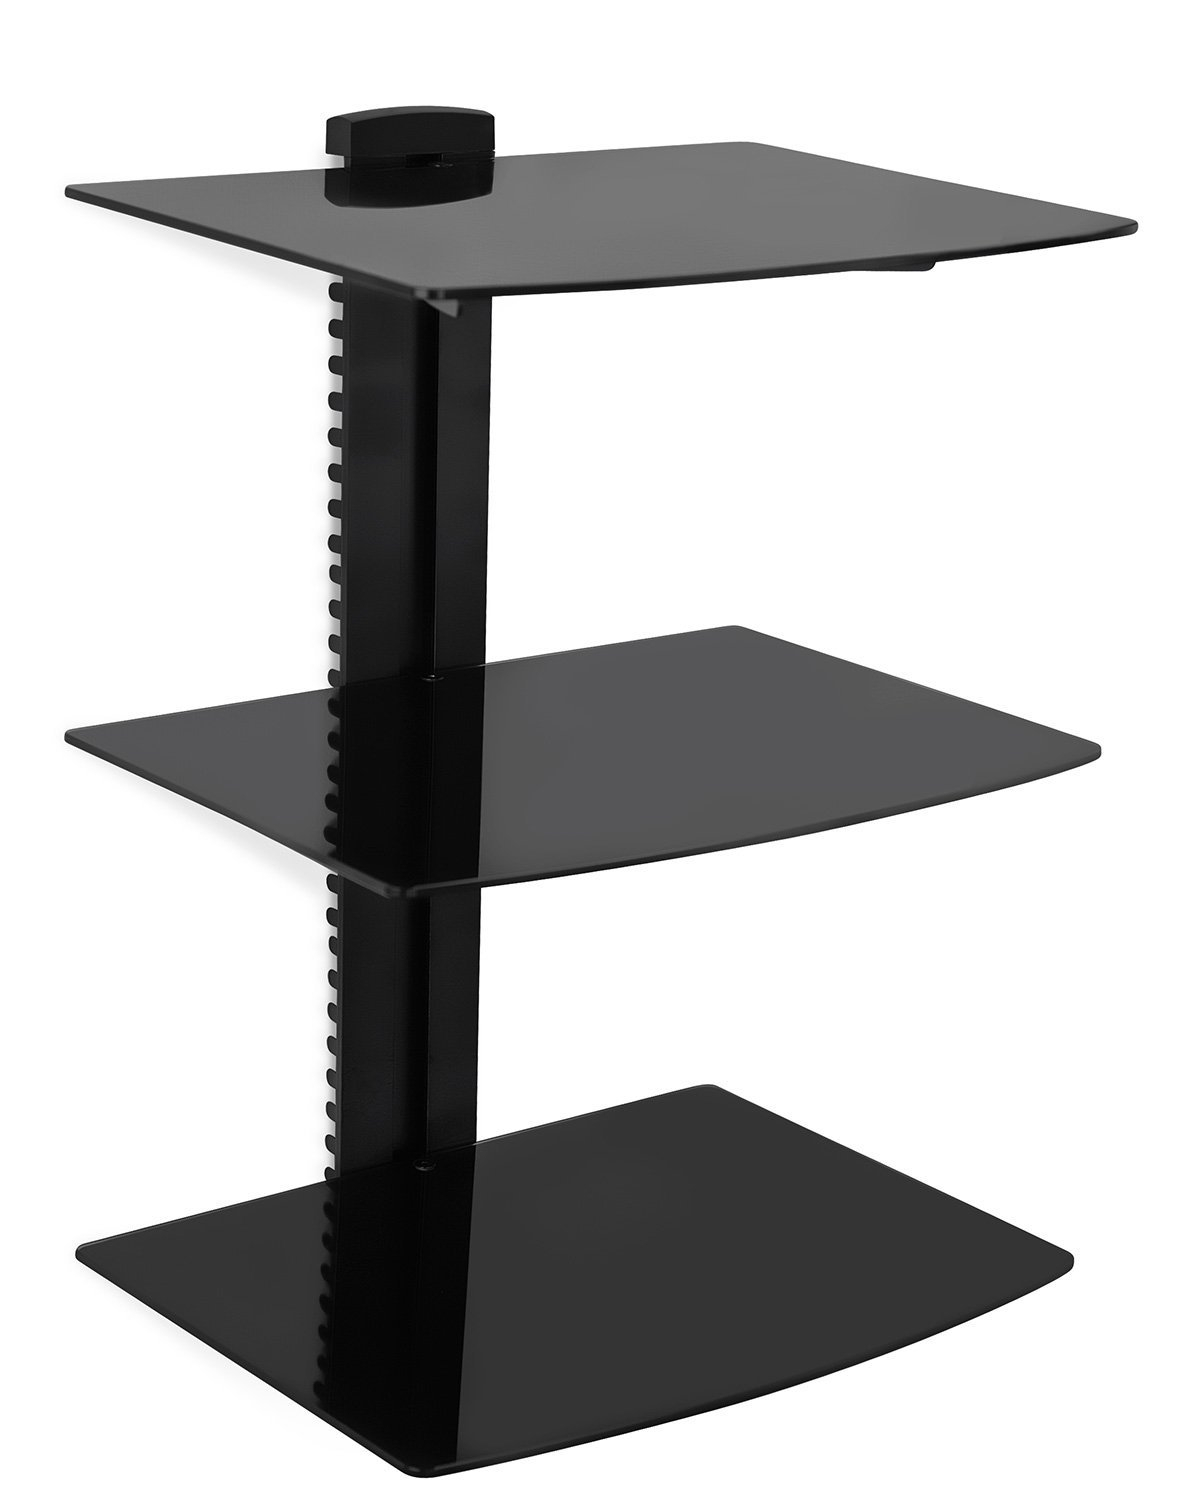 Amazon Mount It Wall Mounted Av Component Shelving System Regarding Cable Glass Shelf System (#3 of 12)